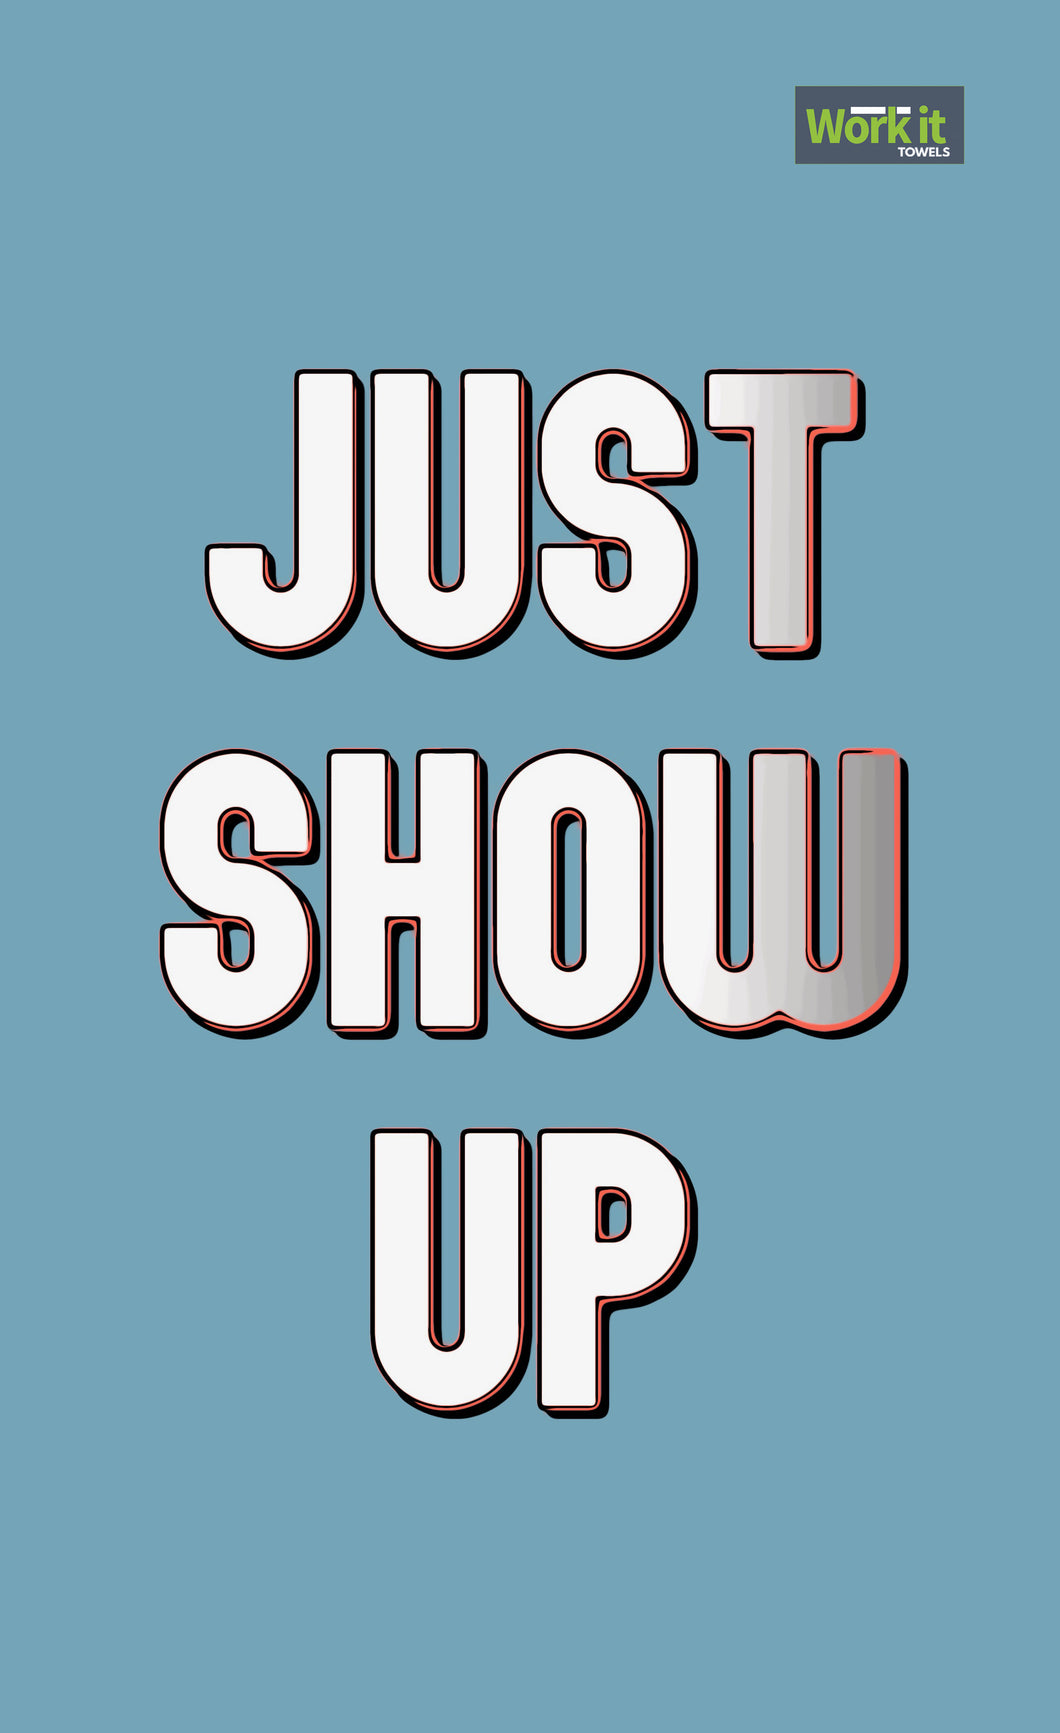 Just Show Up - work it towels